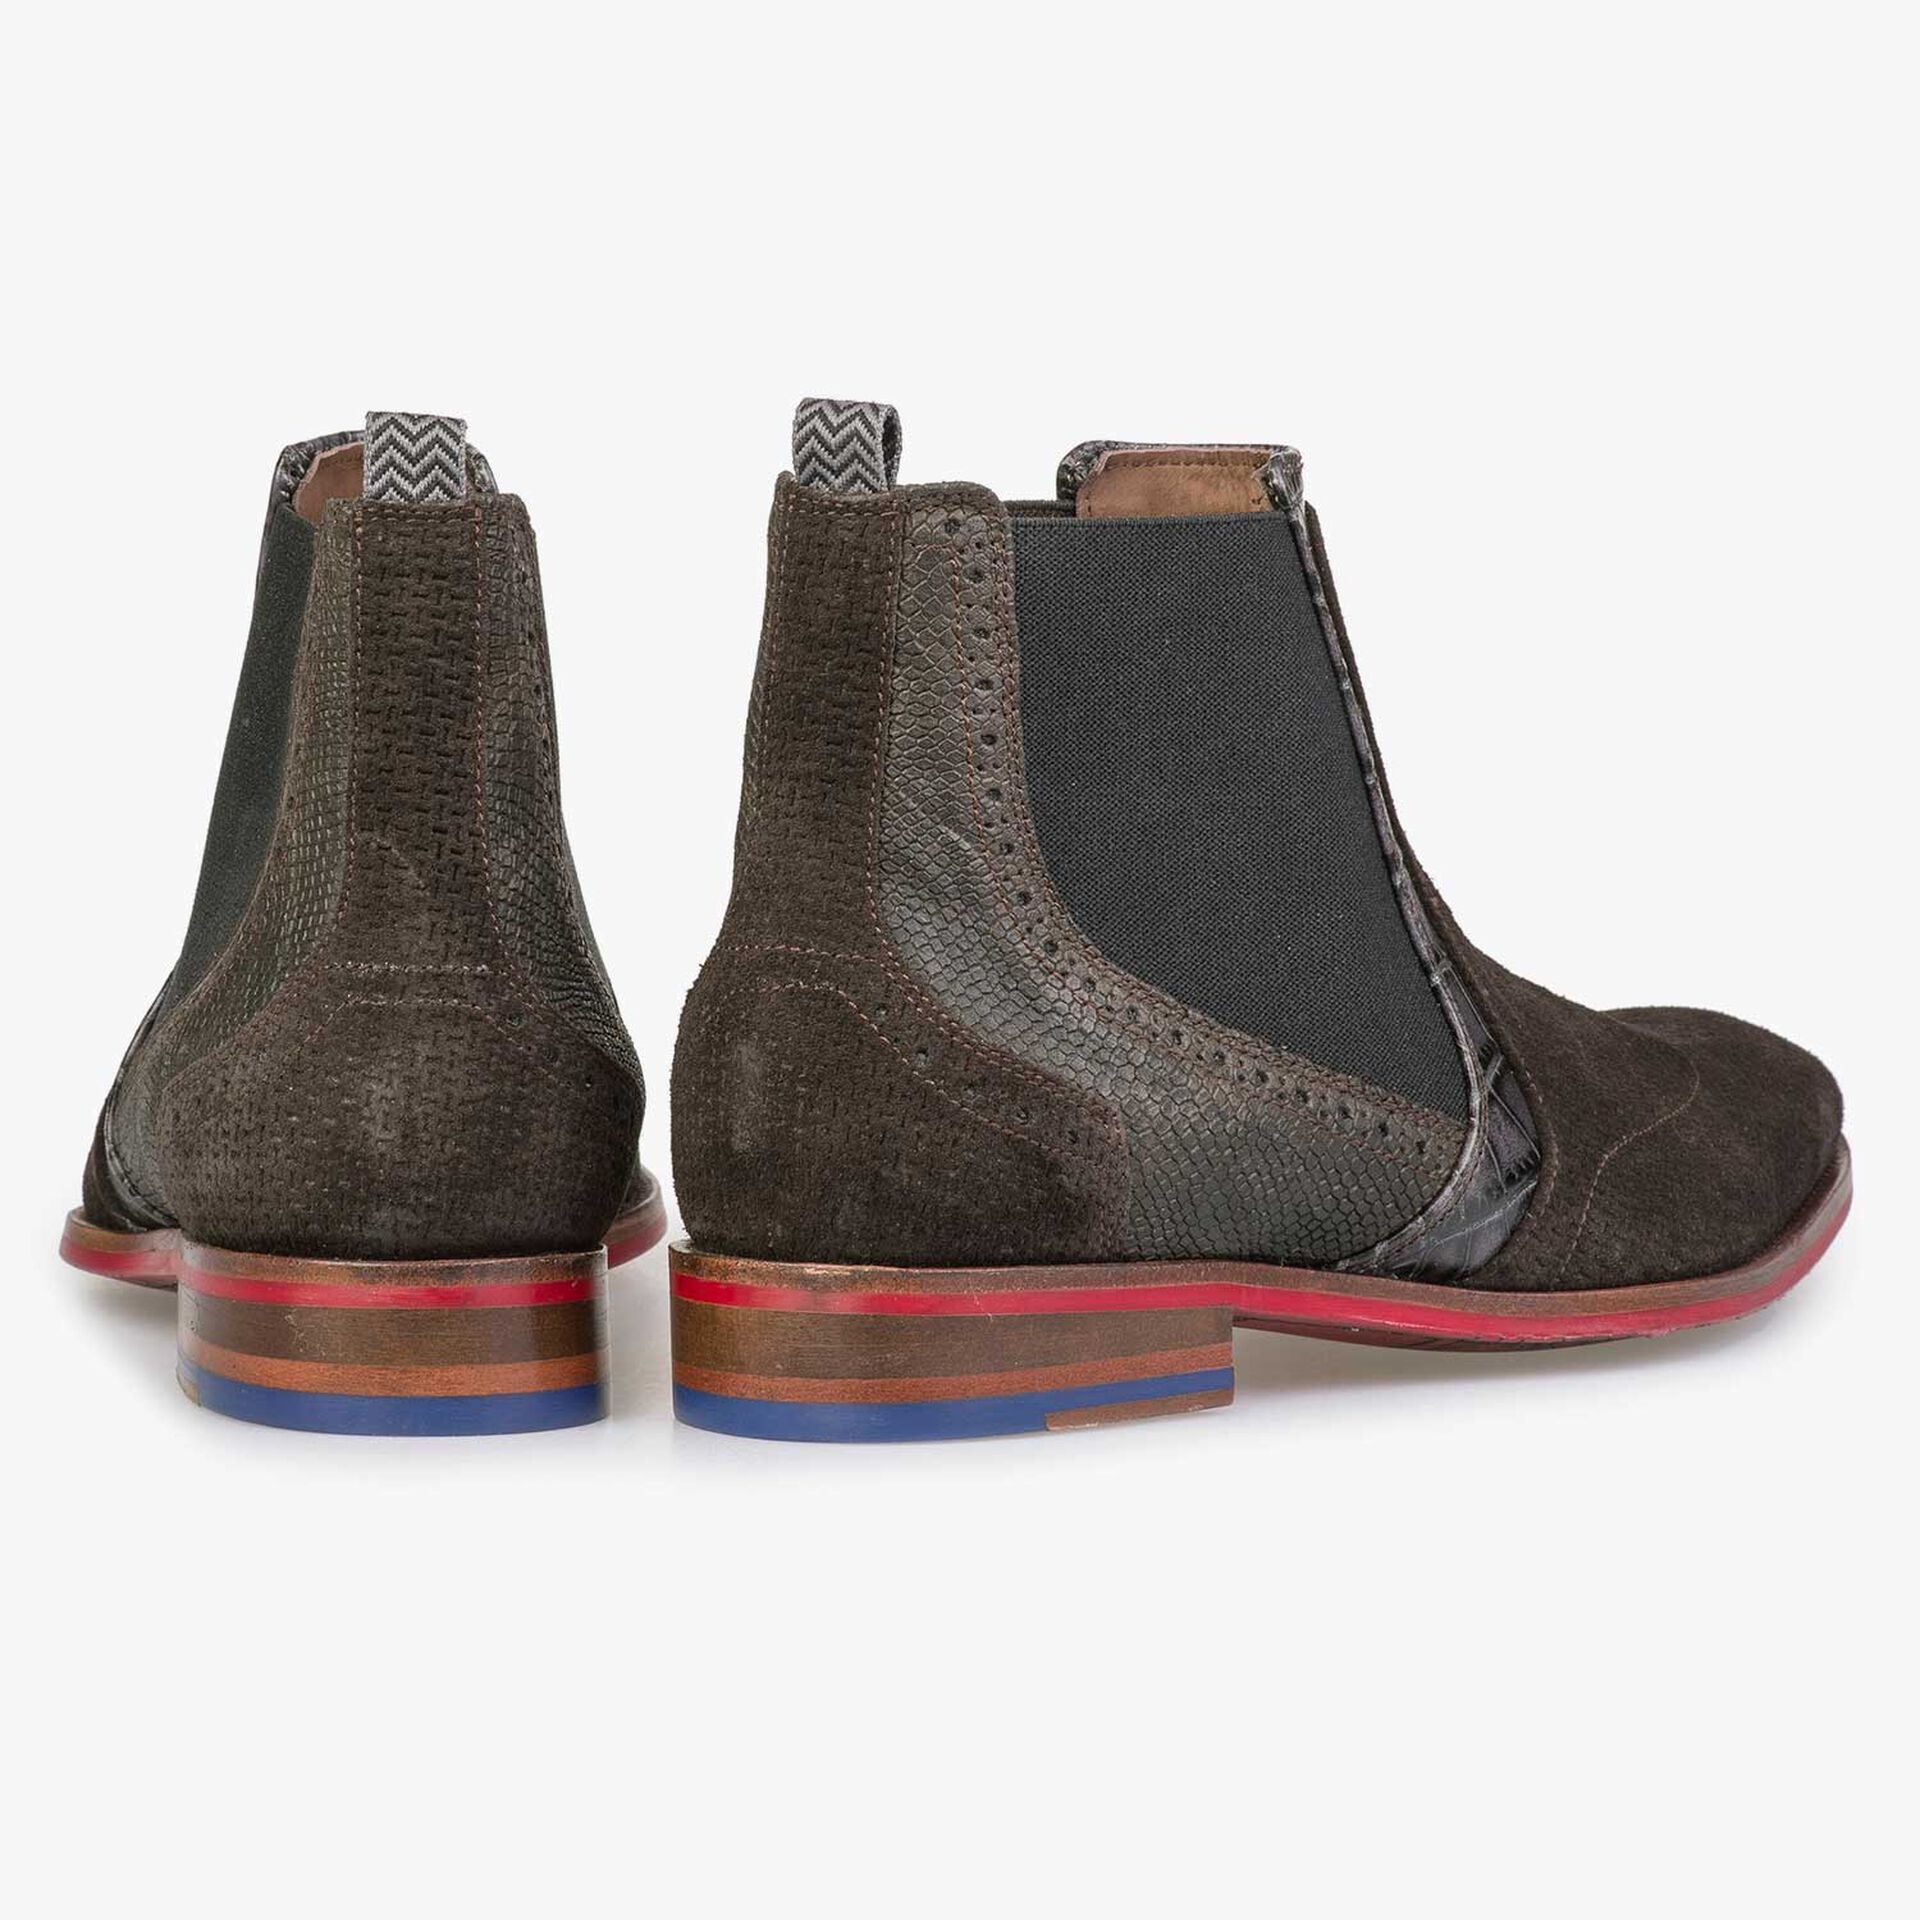 Brown Chelsea boot with structural pattern